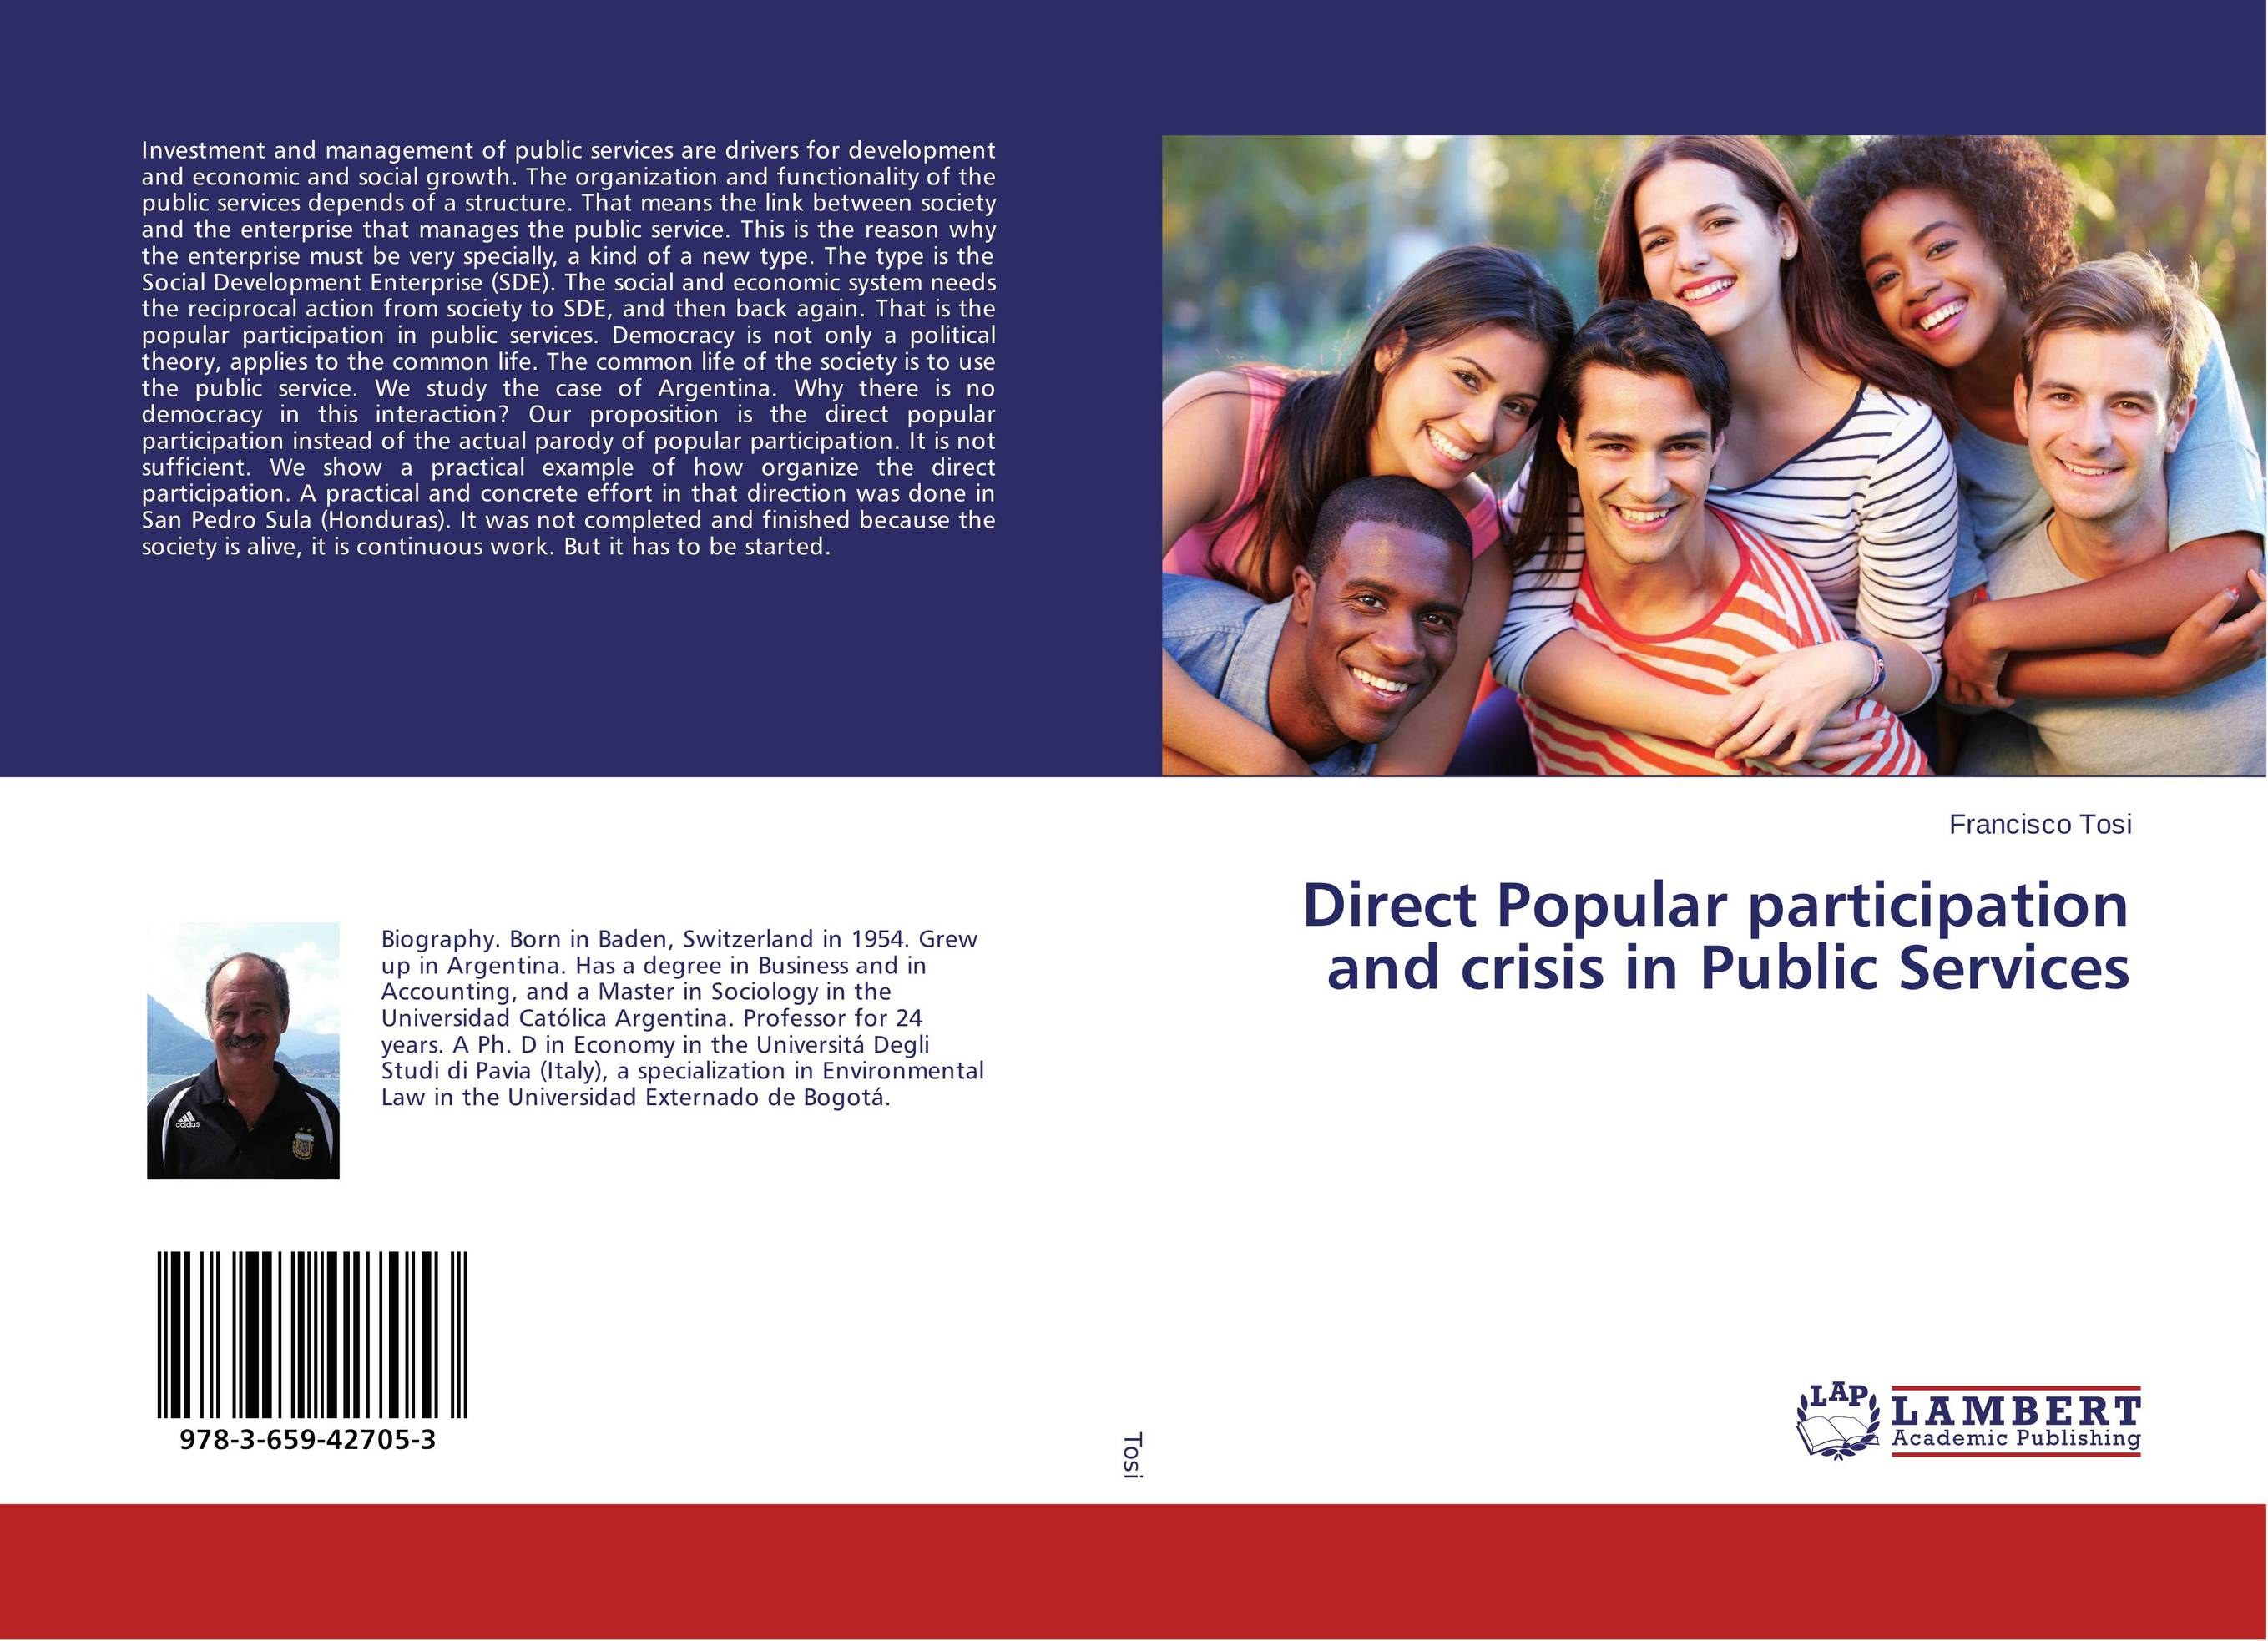 Direct Popular participation and crisis in Public Services the common link